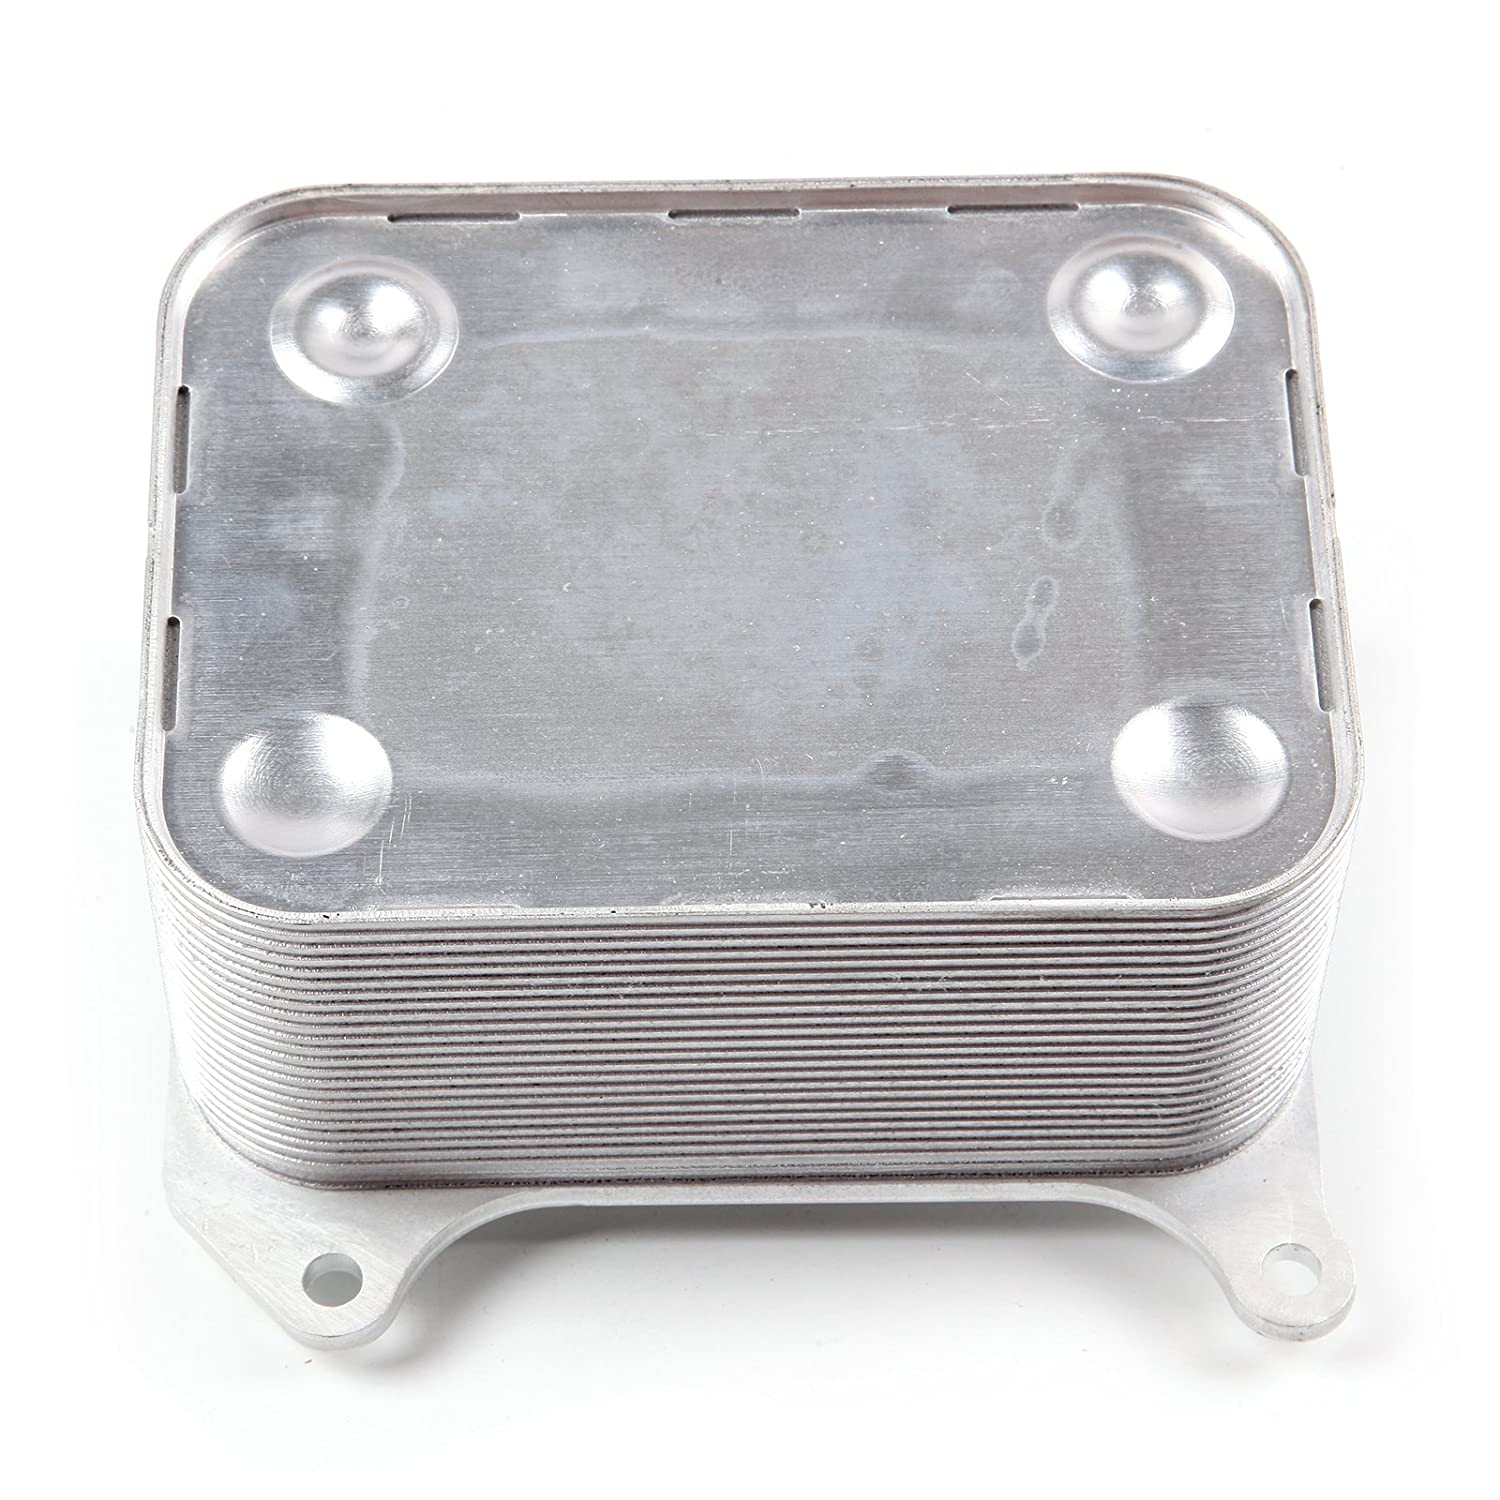 ECCPP Front Automotive Replacement High Flow Oil Cooler Stainless Steel for 2003-2010 Ford 6.0L Powerstroke Diesel F250 F350 High Flow Oil Cooler